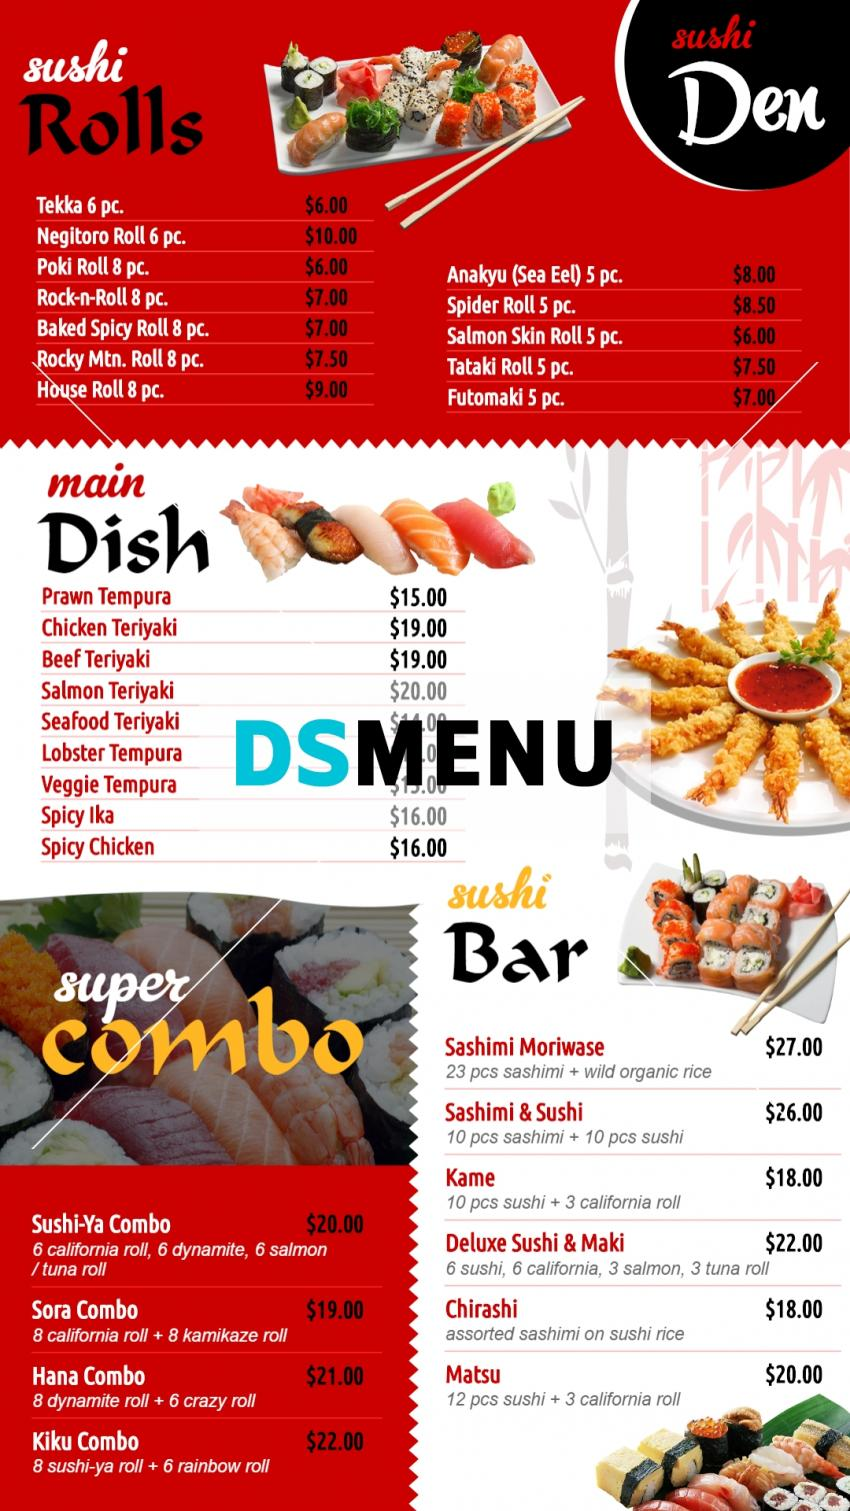 Japanese Vertical sushi menuboad for digital signage